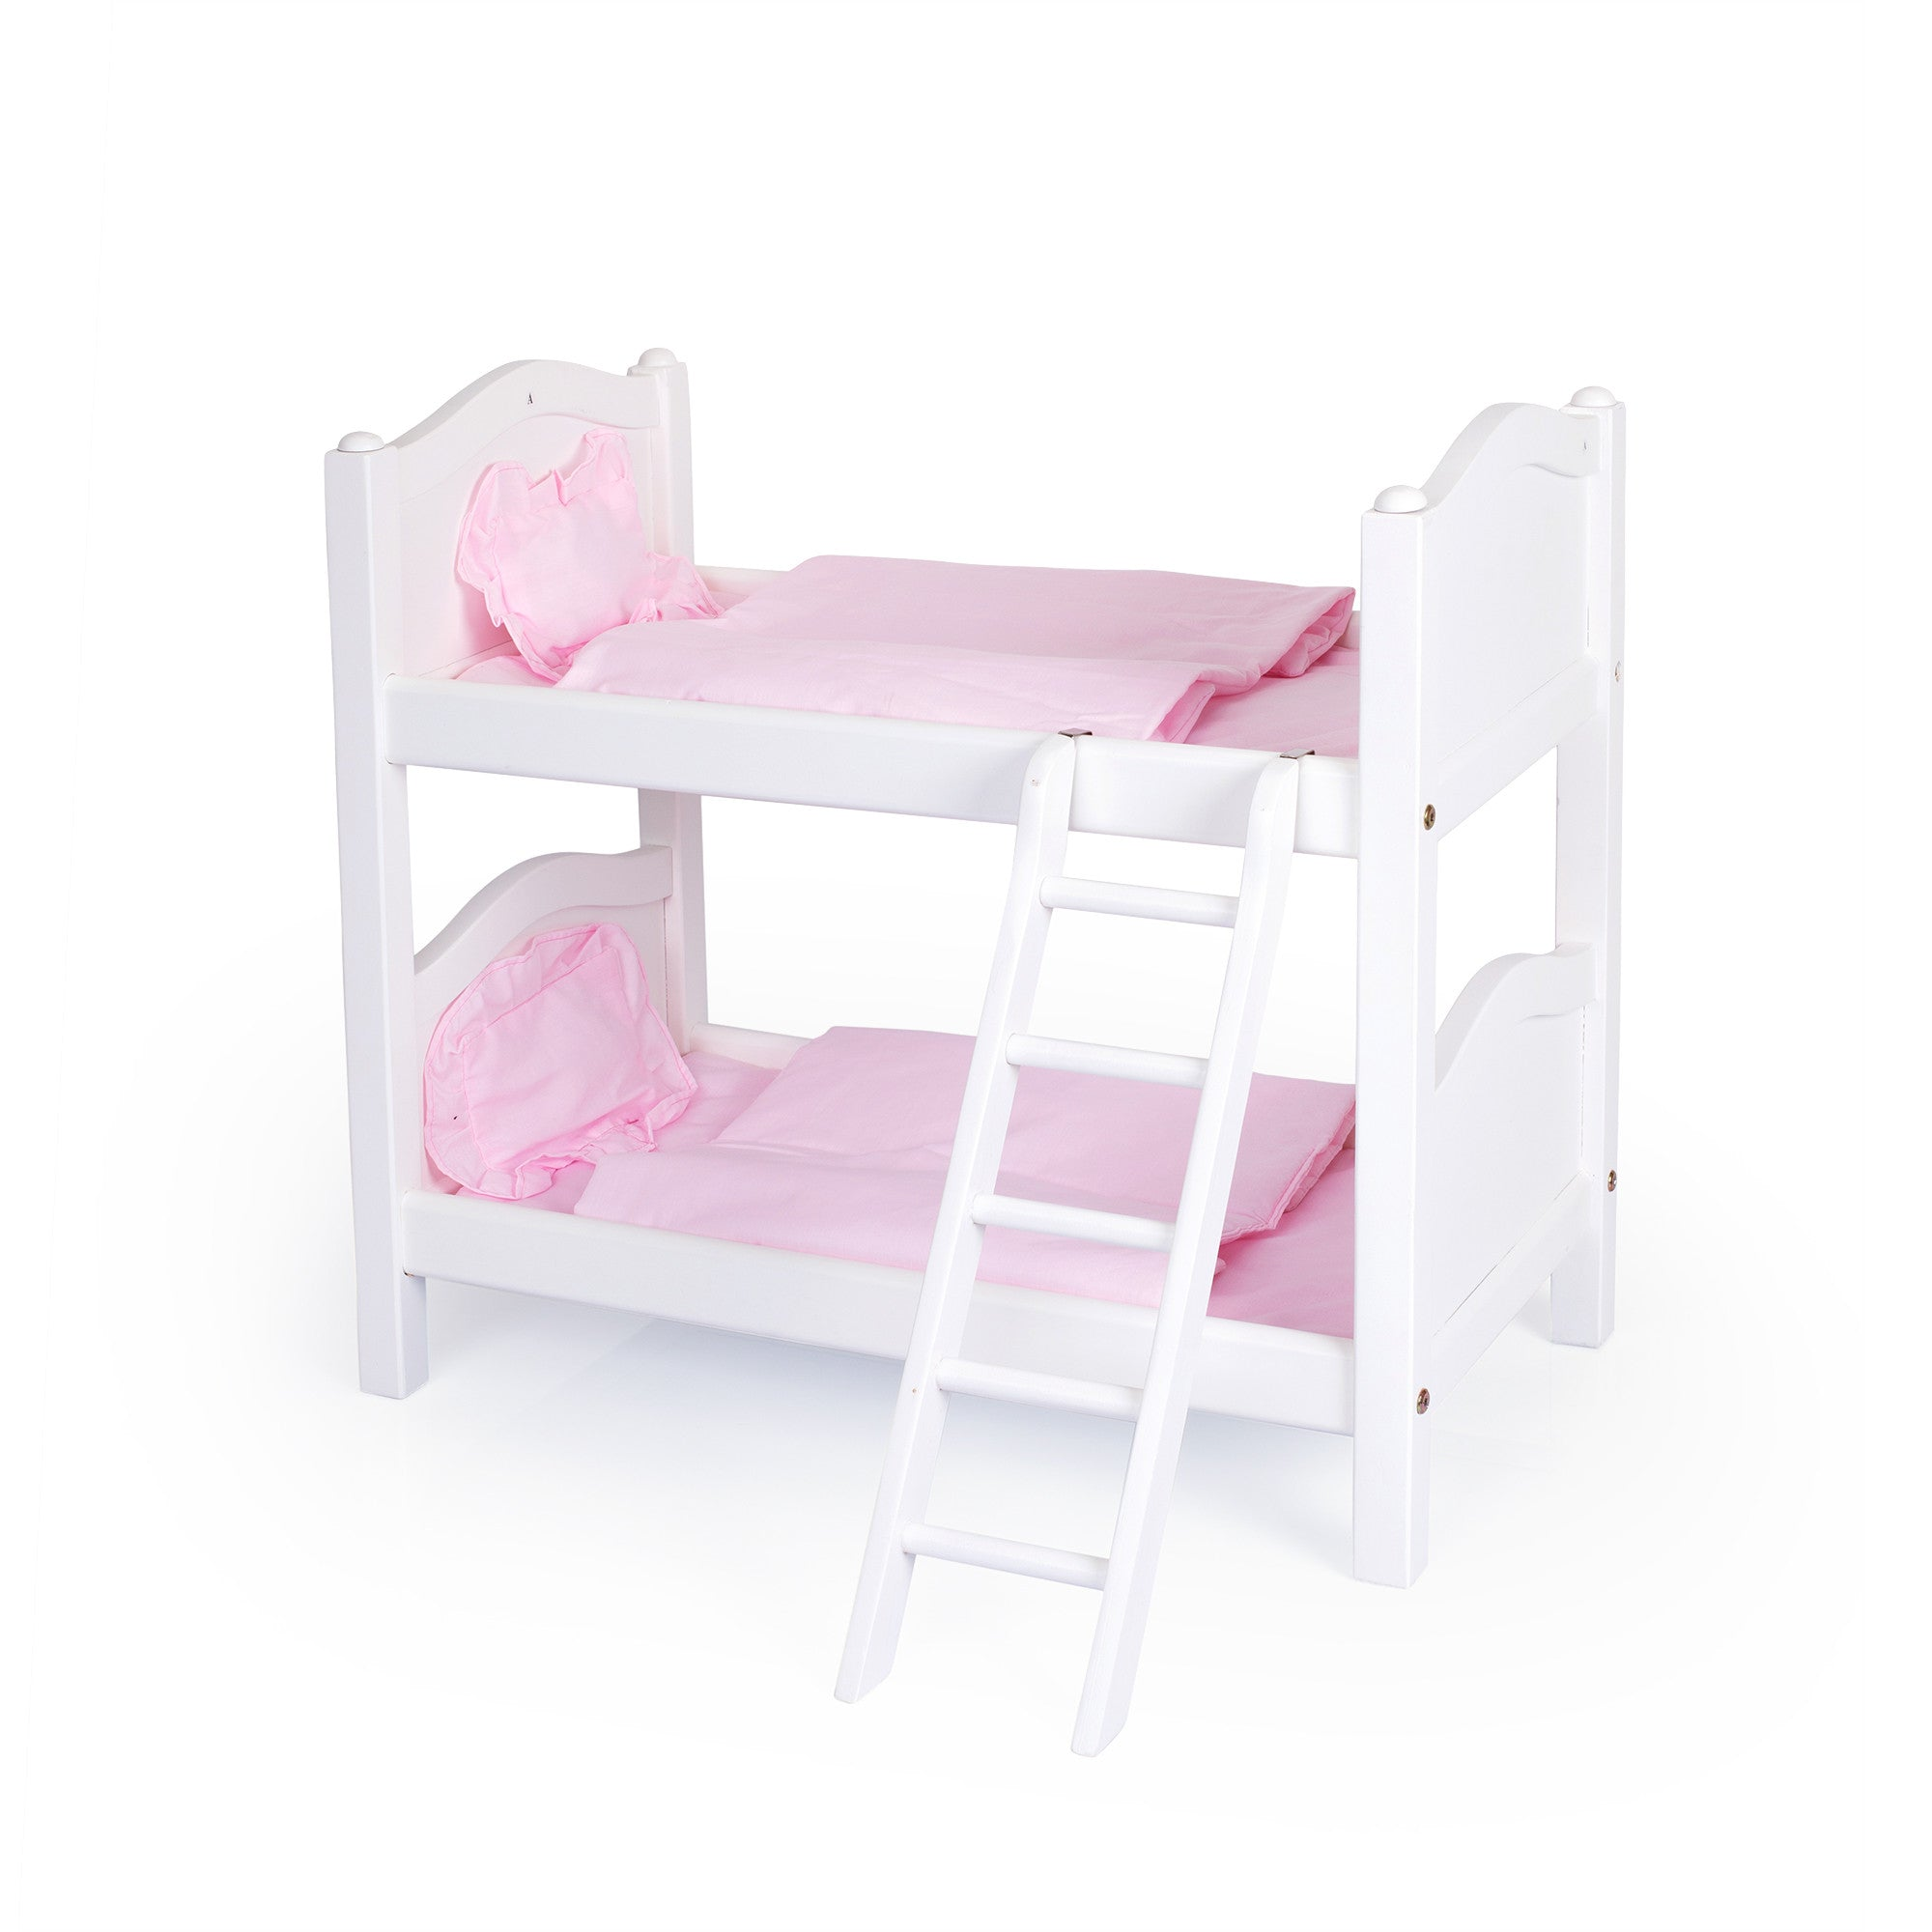 Guidecraft Doll Bunk Bed- White G98127